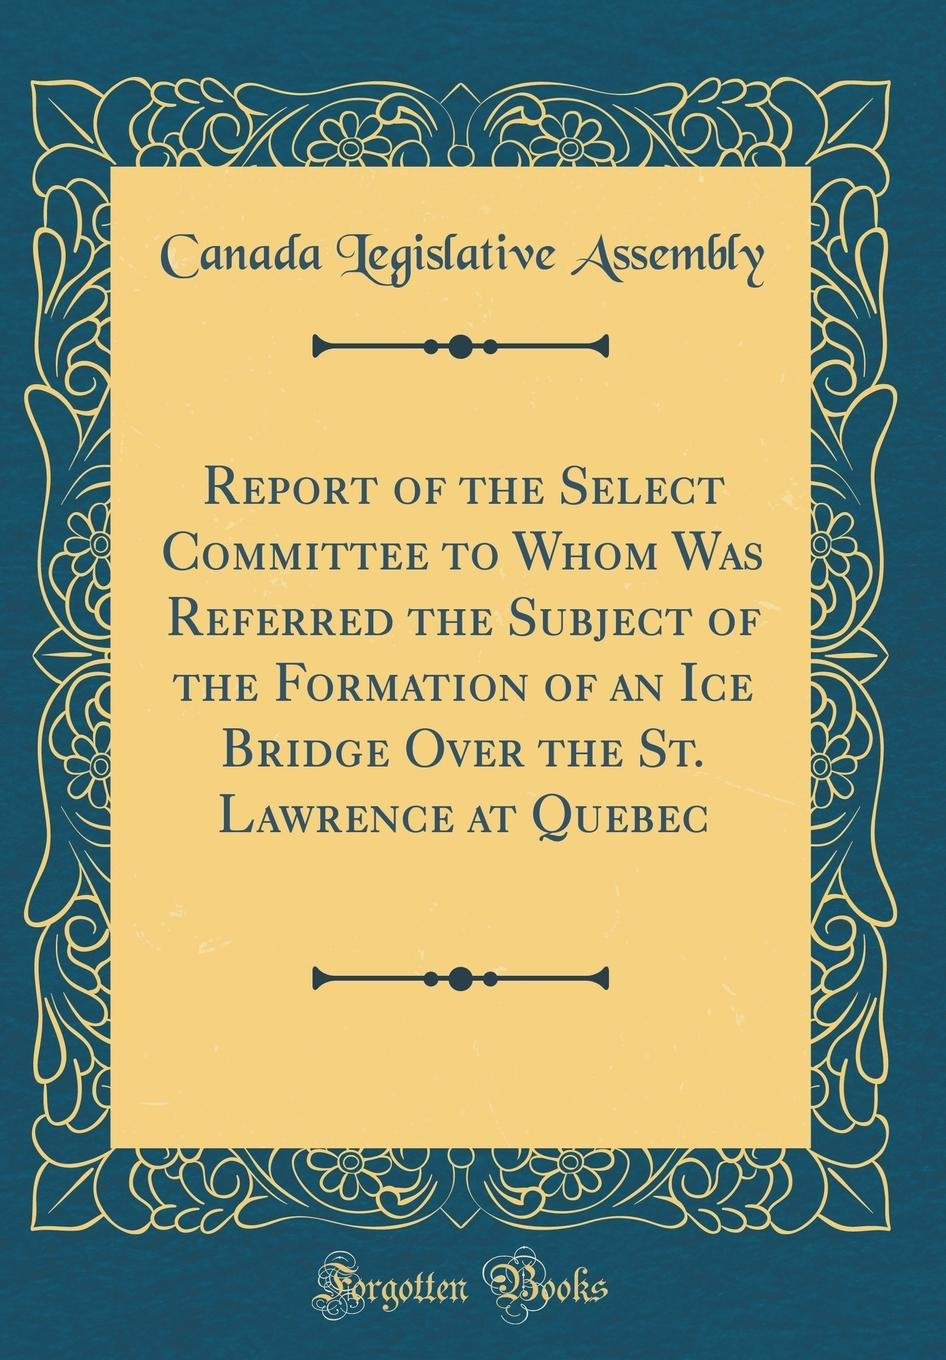 Read Online Report of the Select Committee to Whom Was Referred the Subject of the Formation of an Ice Bridge Over the St. Lawrence at Quebec (Classic Reprint) pdf epub